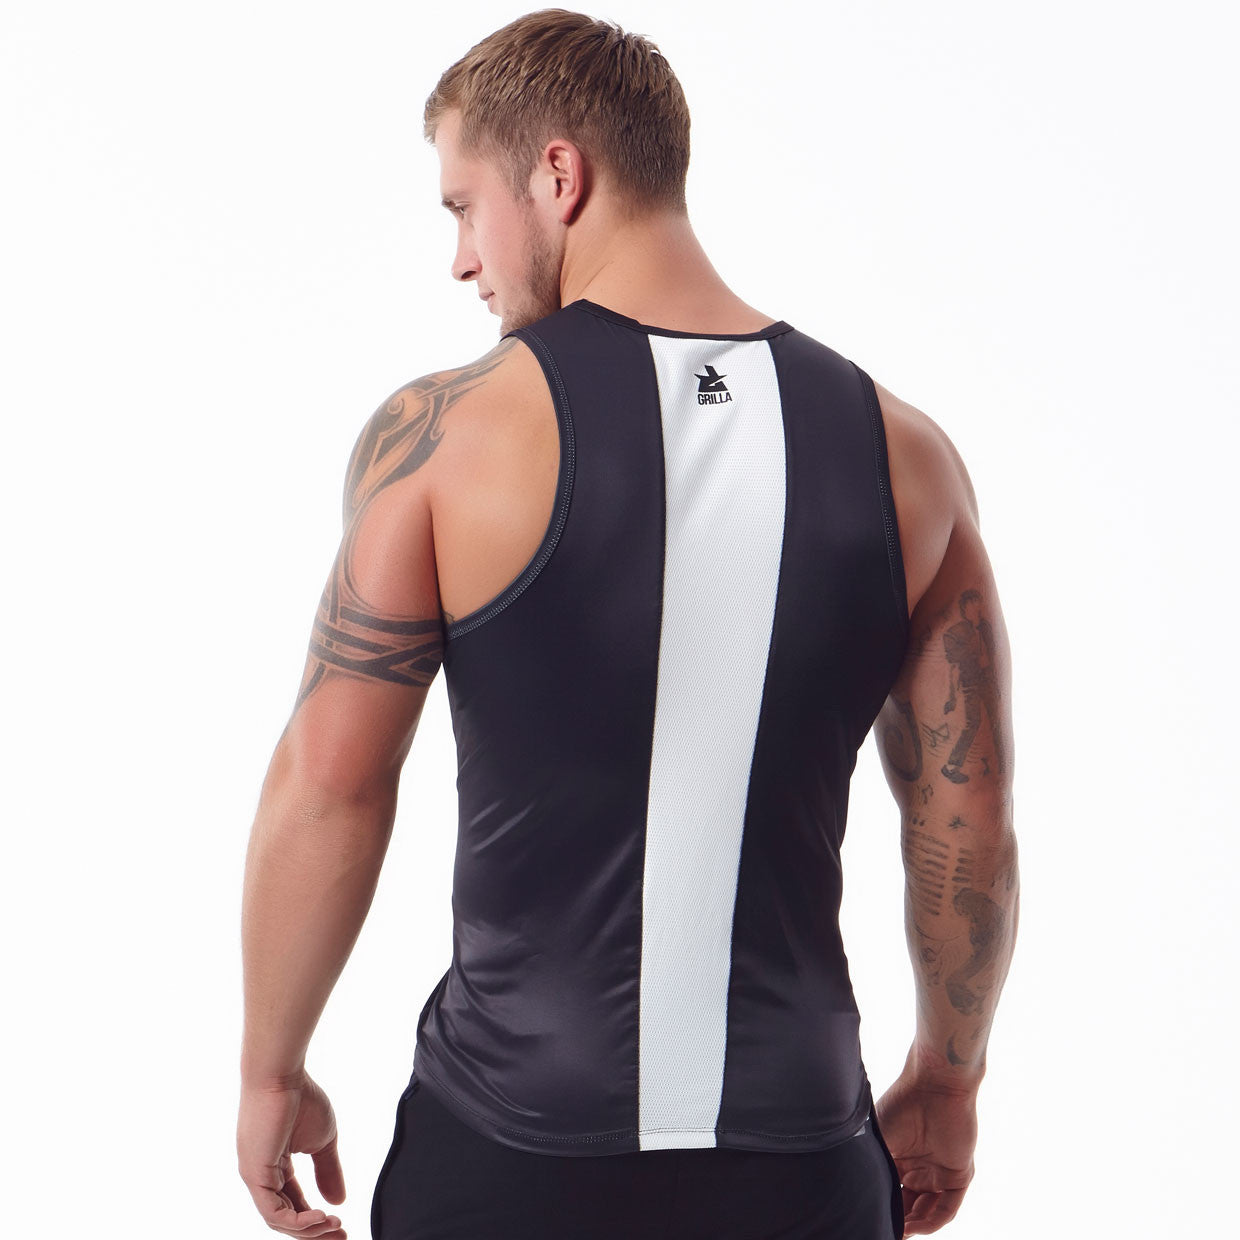 Grilla Cobra Breathable Vest